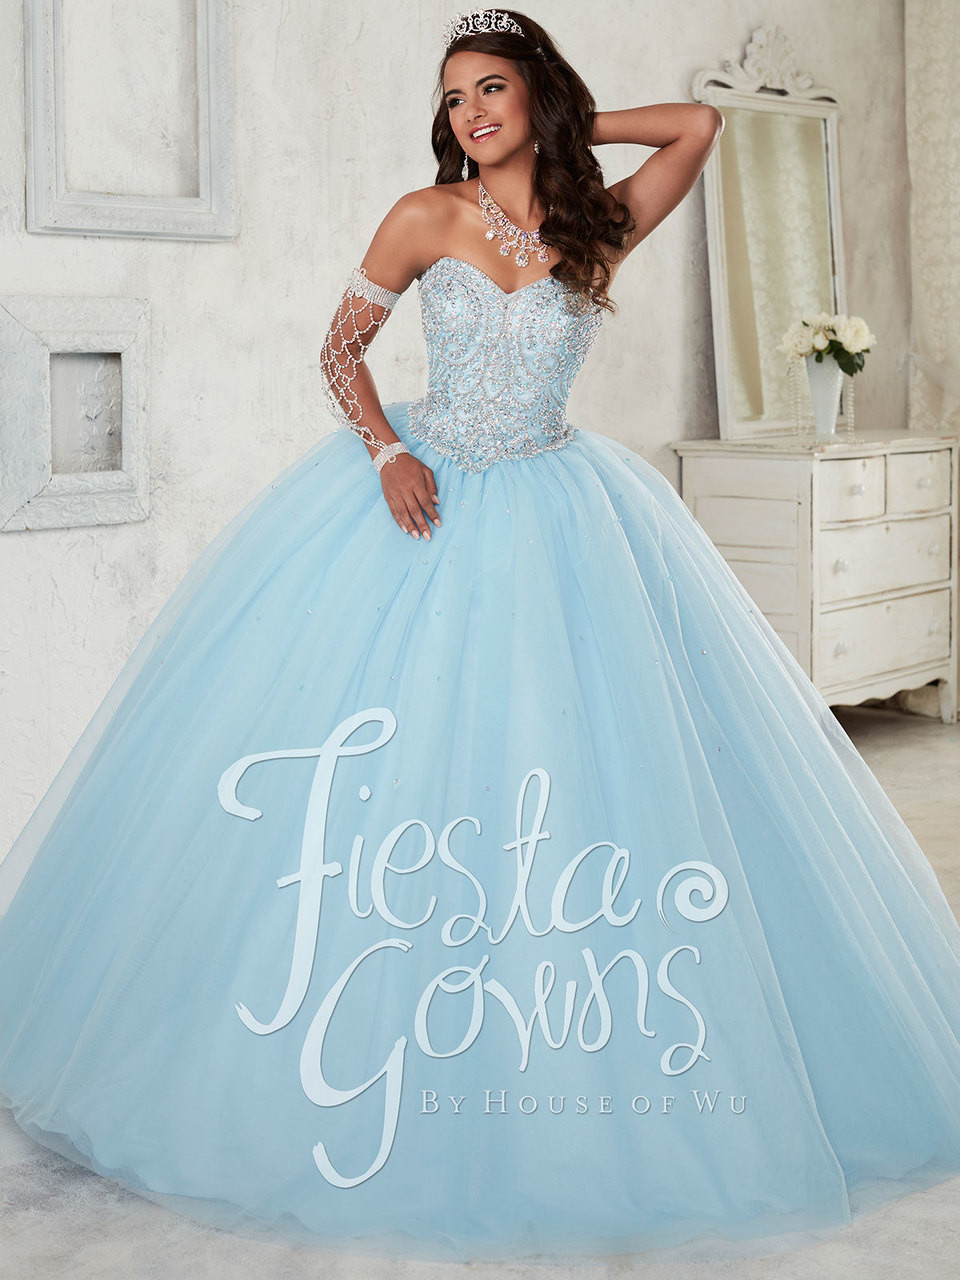 Fiesta 56298 Sweetheart Beaded Ball Gown Dress | PromHeadquarters.com